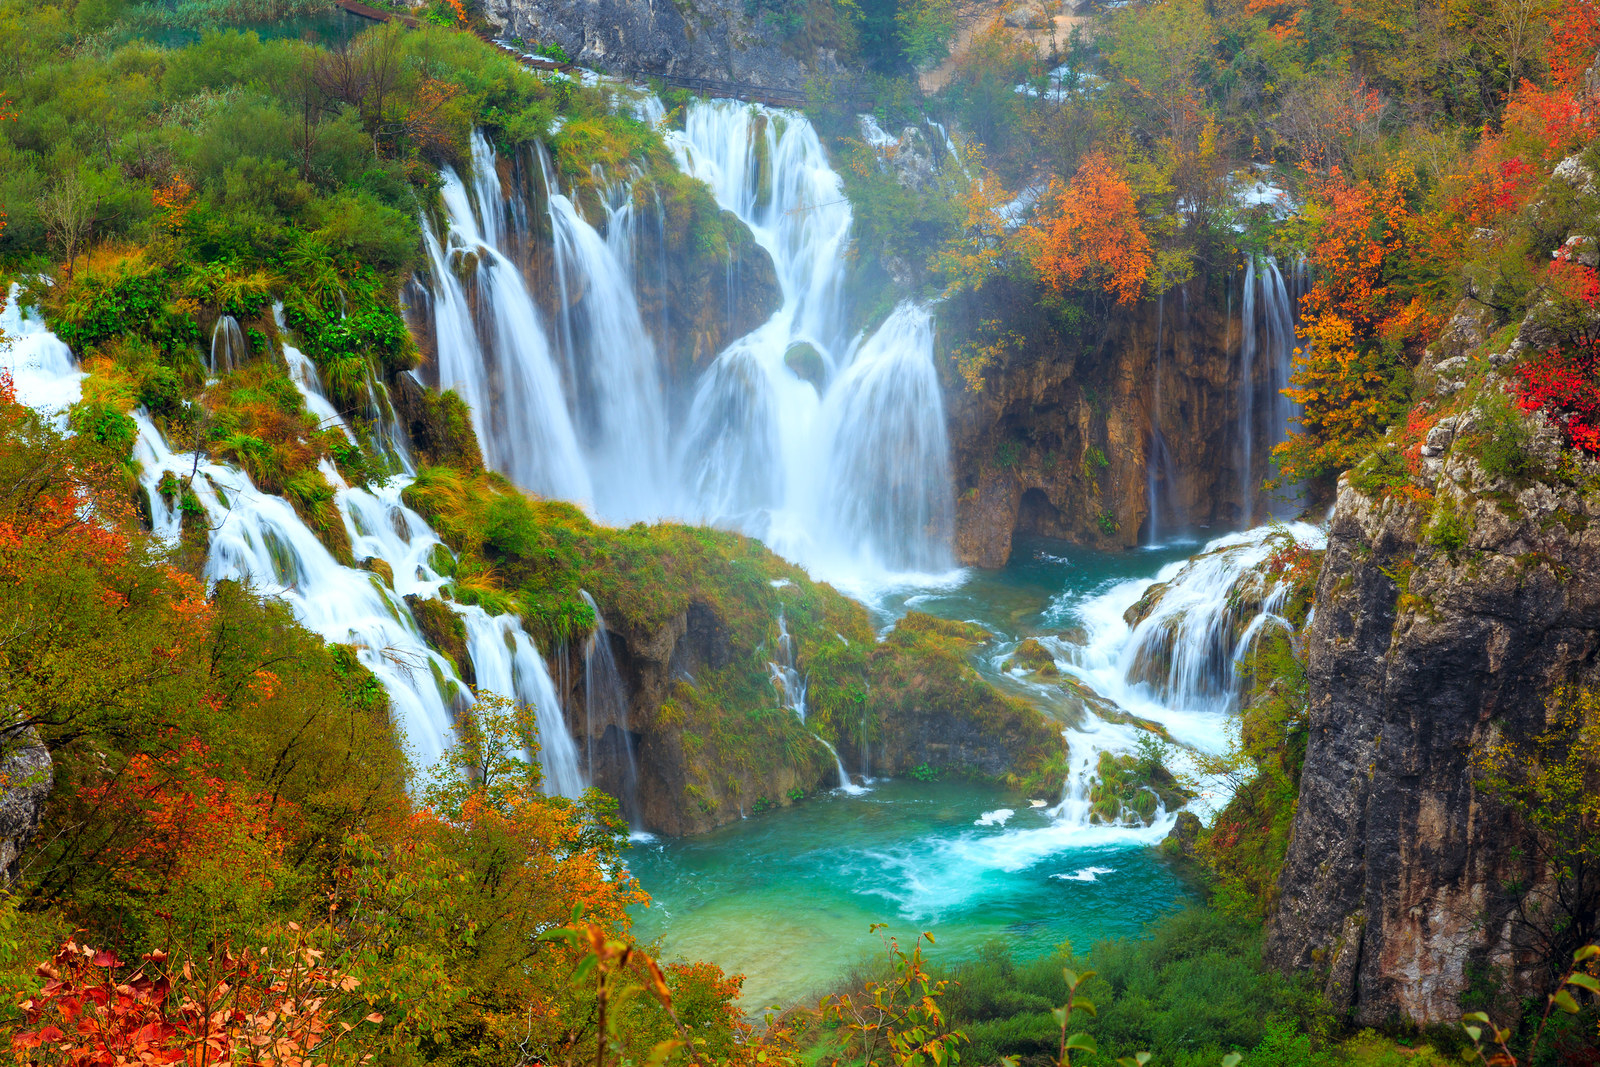 Croatia: Plitvice Lakes National Park -  This Croatian park — one of the most scenic spots in all of Europe — is made up of 16 towering lakes all joined together by cascading waterfalls.